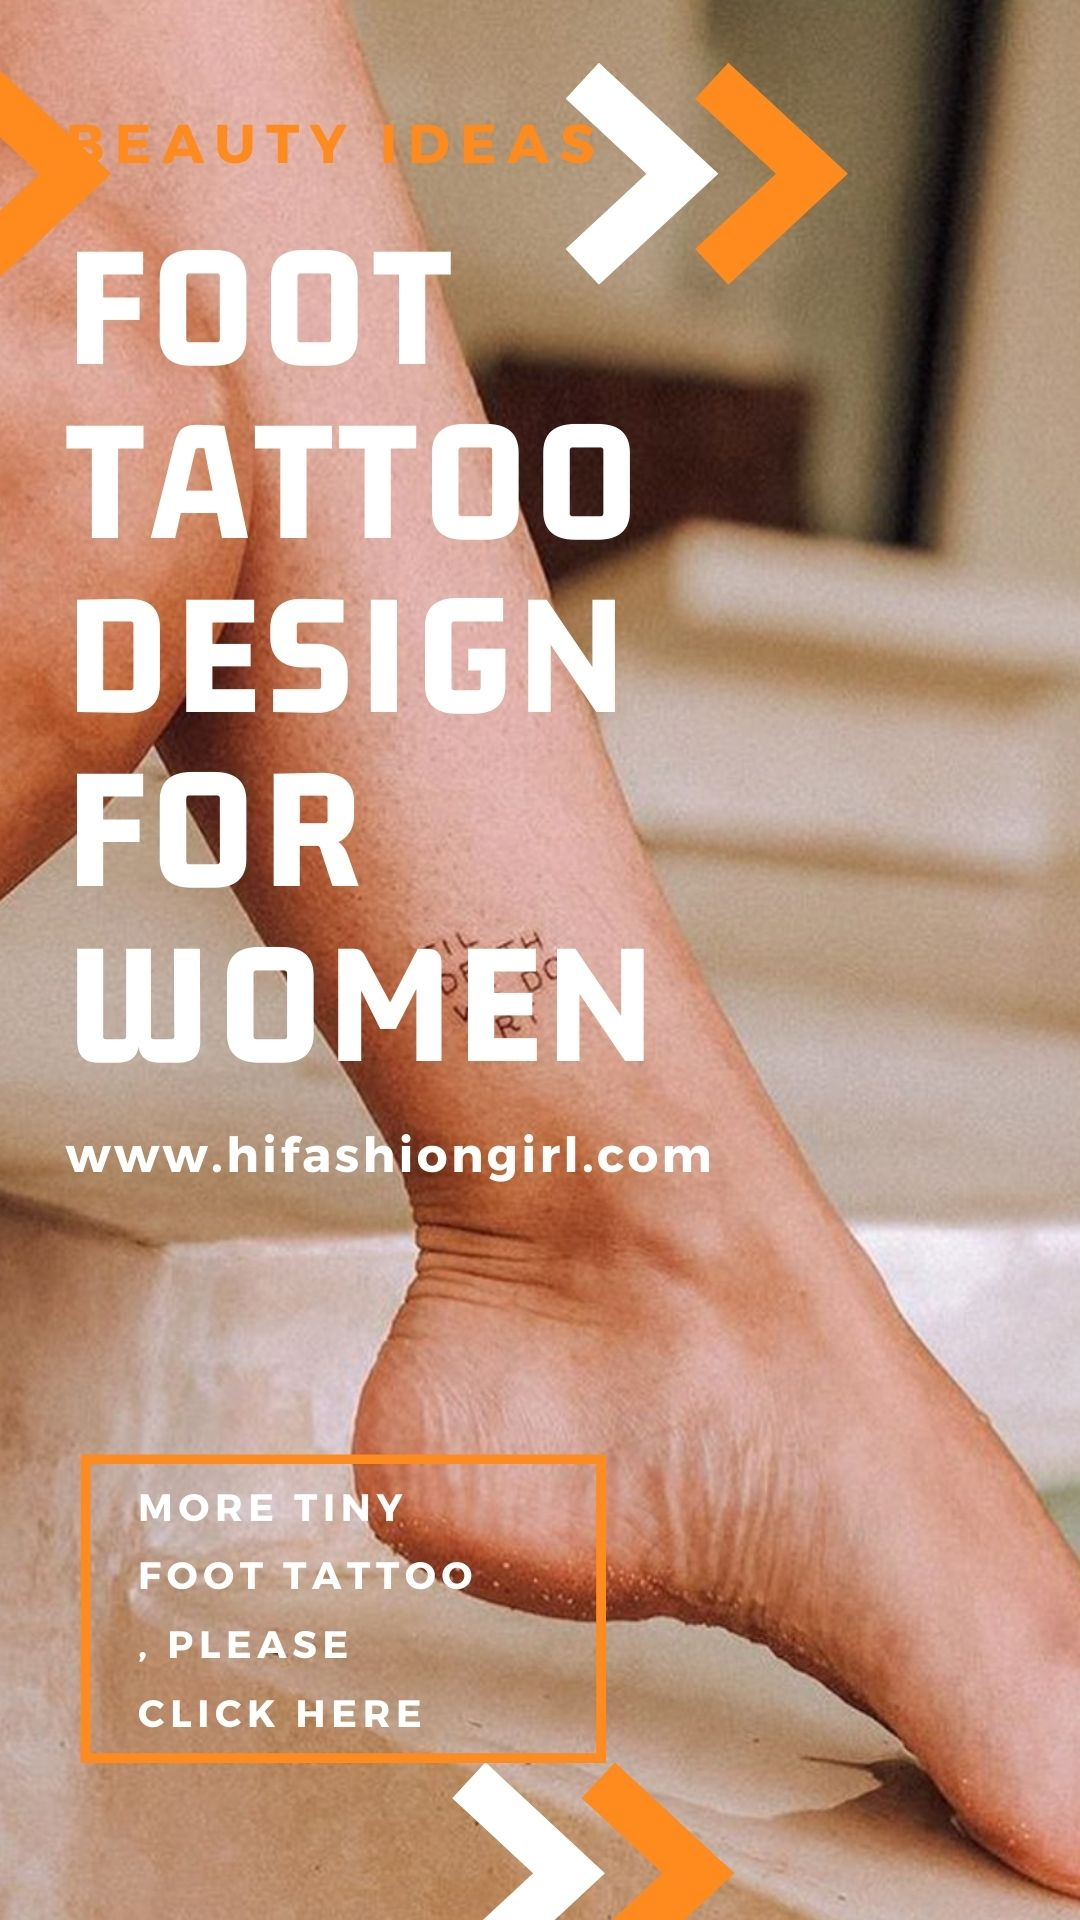 Foot tattoos for women | Try your first tattoo on foot 2021!